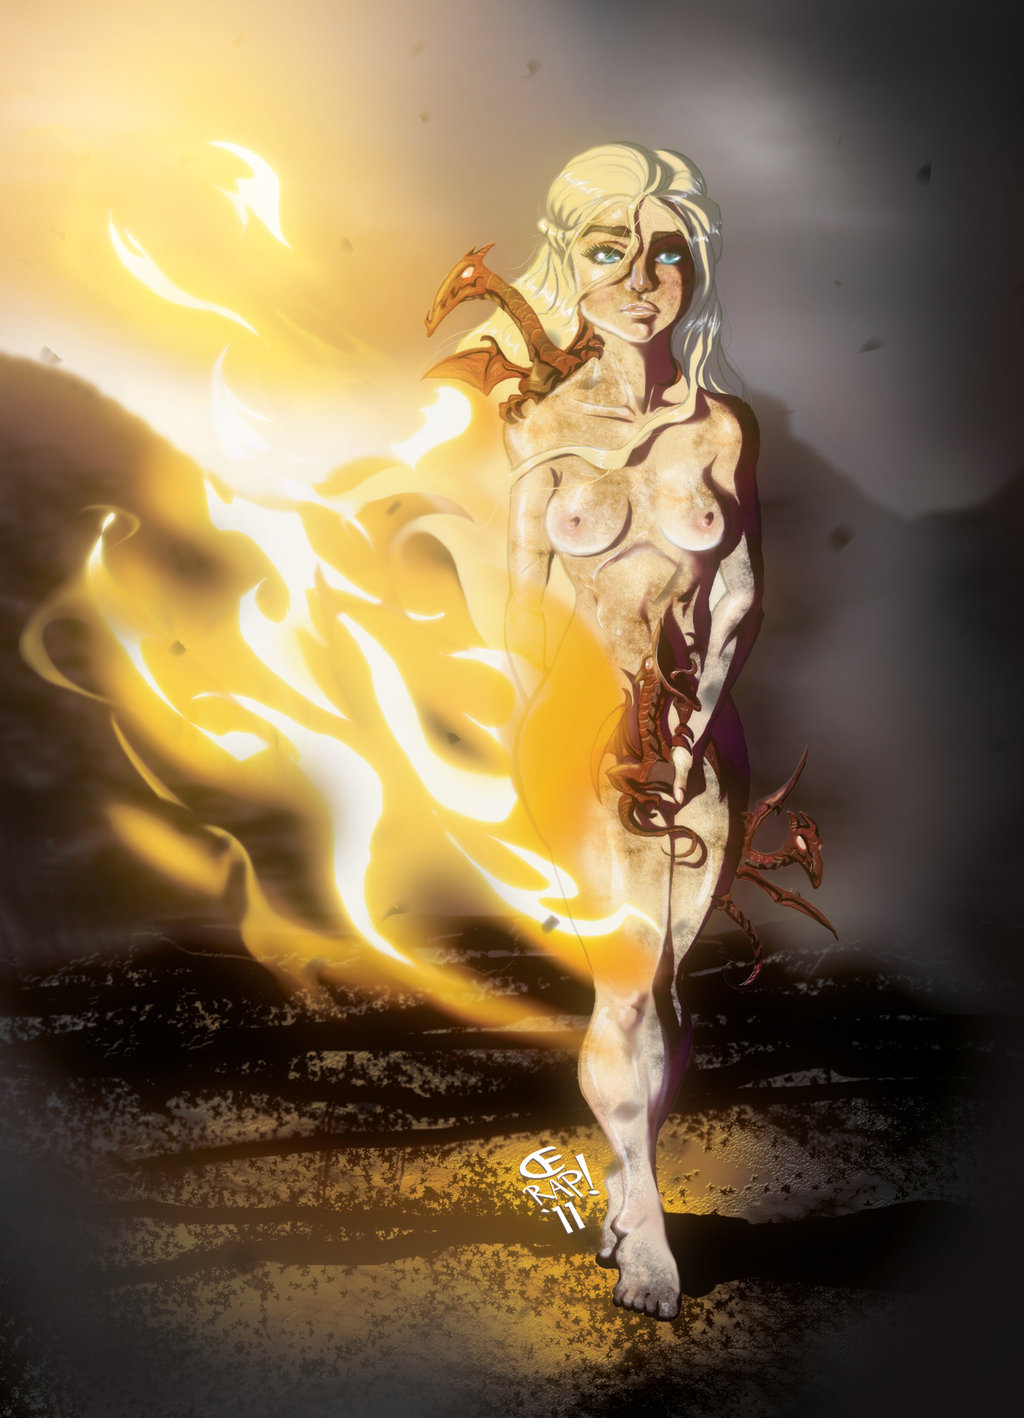 and darkstar song of fire a ice Is this a jojo reference?